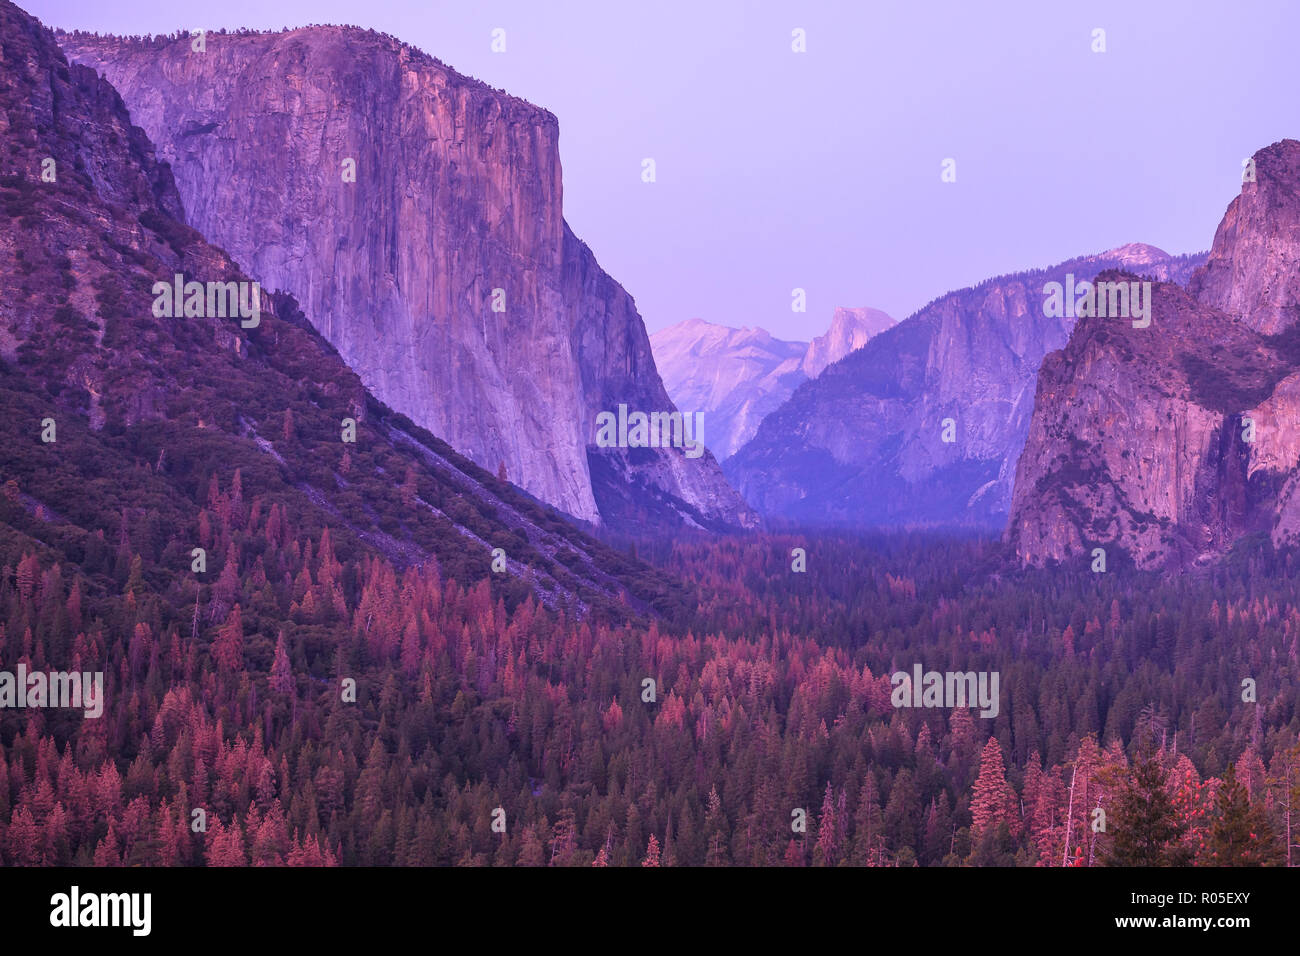 Tunnel View overlook Magenta sunset in Yosemite National Park. Close up on the popular El Capitan and Half Dome during a pink violet sunset in California, United States. - Stock Image